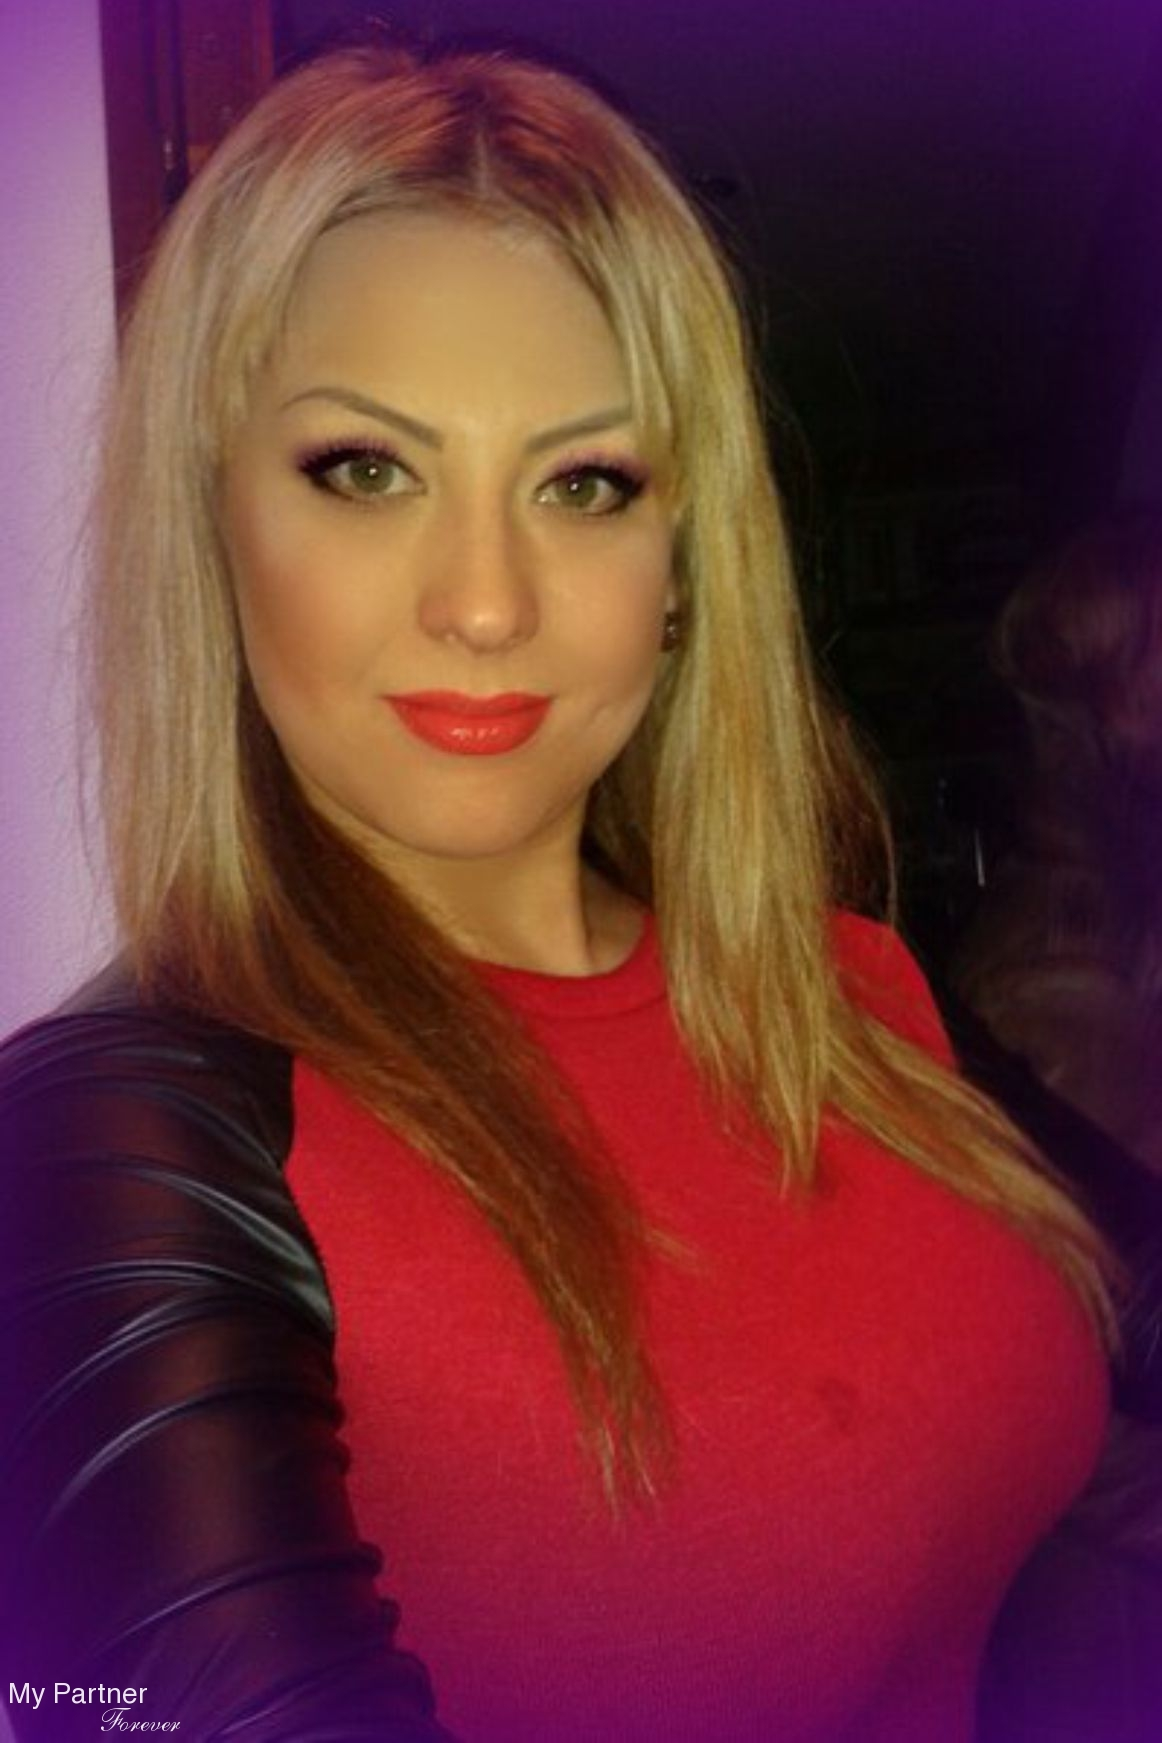 abbottabad dating and singles photo personals Abbottabad dating site dating girls for free 58 with that amount of ordnance, at least one other abbottabad dating site house transgender dating app for iphone was in the blast radius.